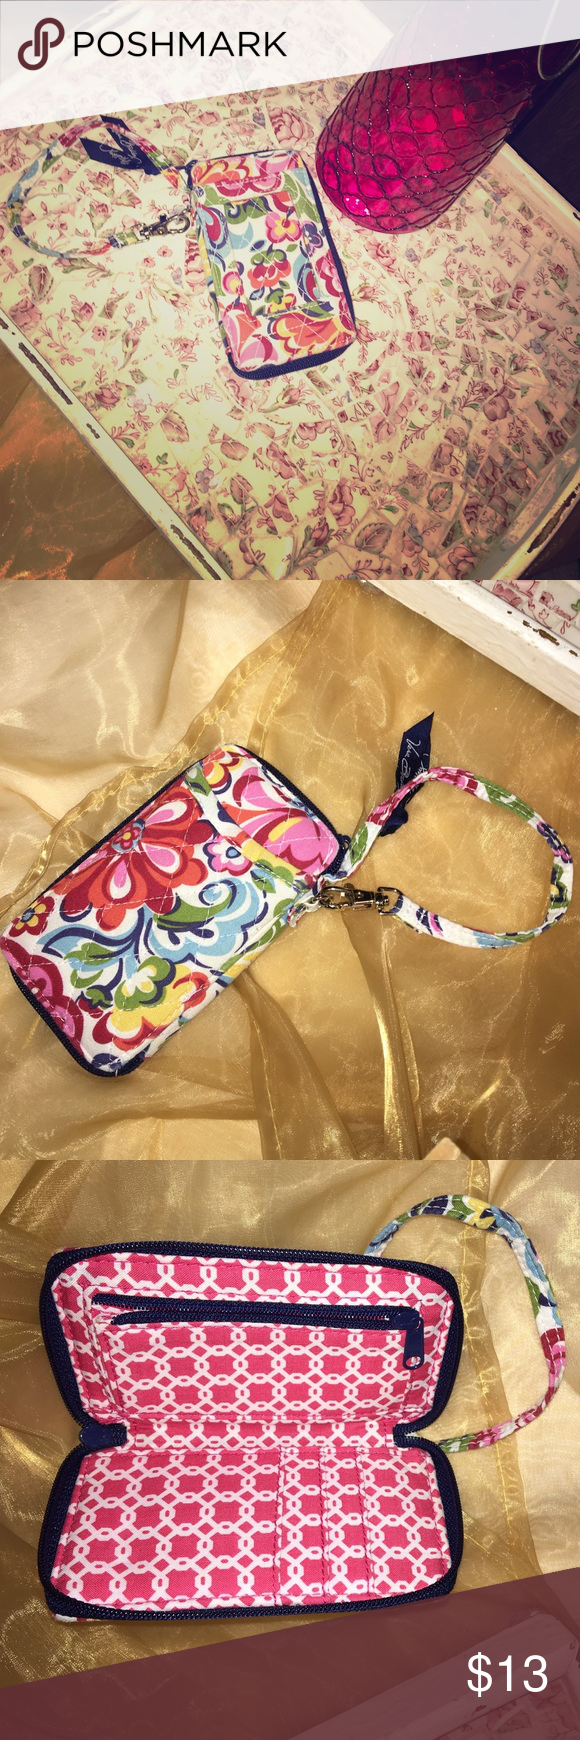 Vera Bradley Wristlet Really cute!! ID holder in the front, pocket in the back, 3 card slots inside with Zip coin slot, and a slot behind that. Smoke free home. 5.5 inches long, 3.5 inches wide. Vera Bradley Bags Clutches & Wristlets